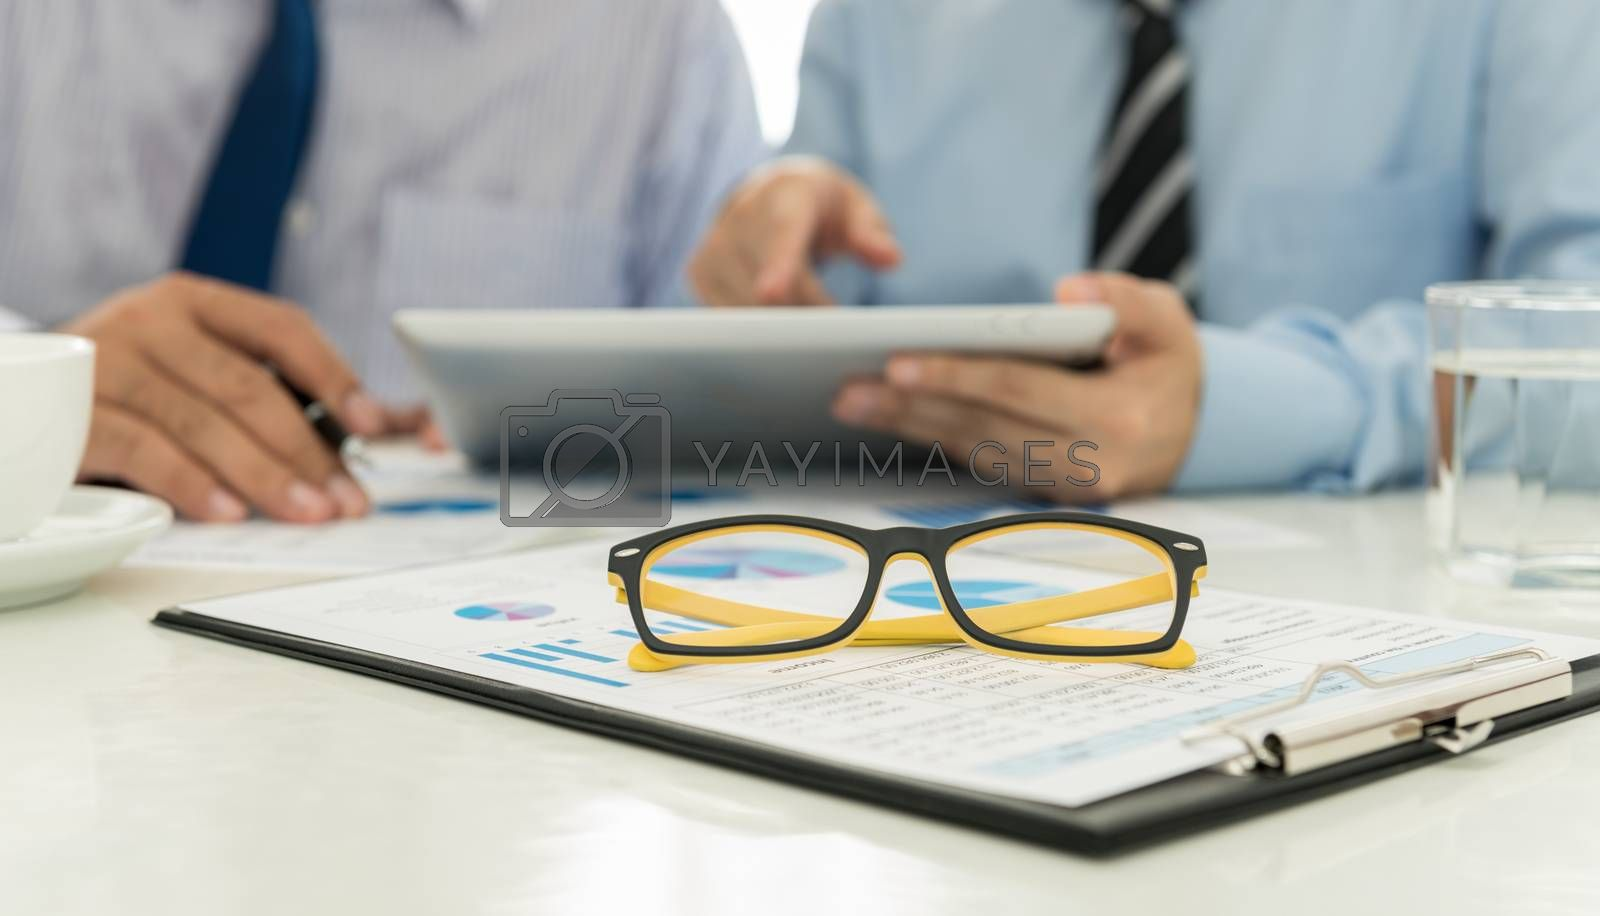 close-up glasses on analysis report In the meeting rooms